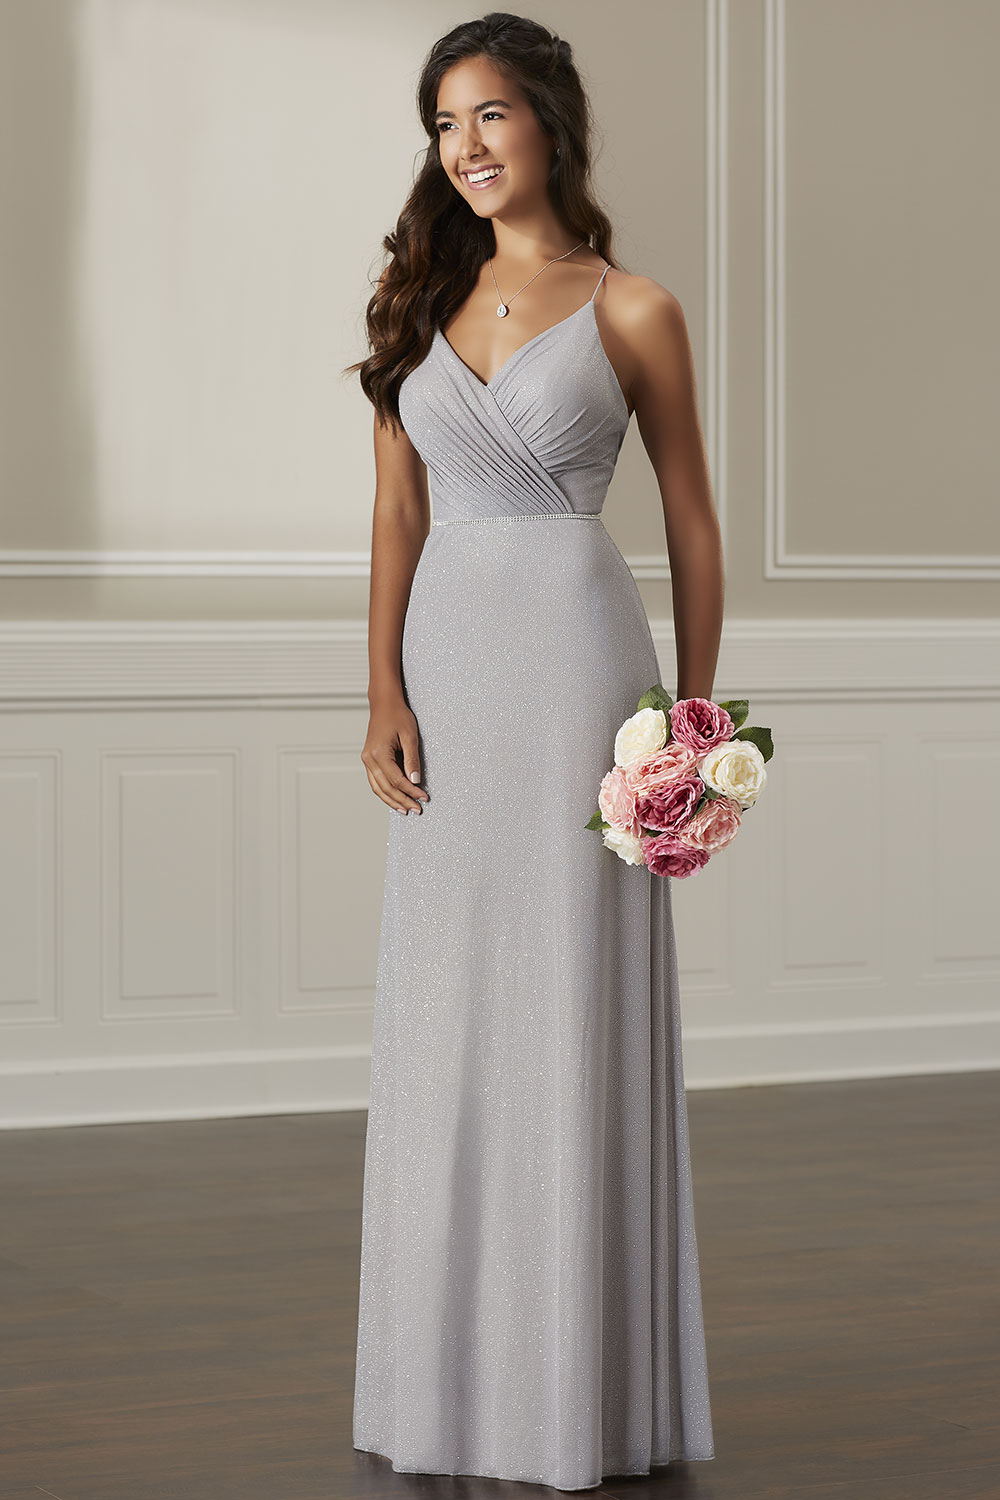 bridesmaid-dresses-jacquelin-bridals-canada-26837